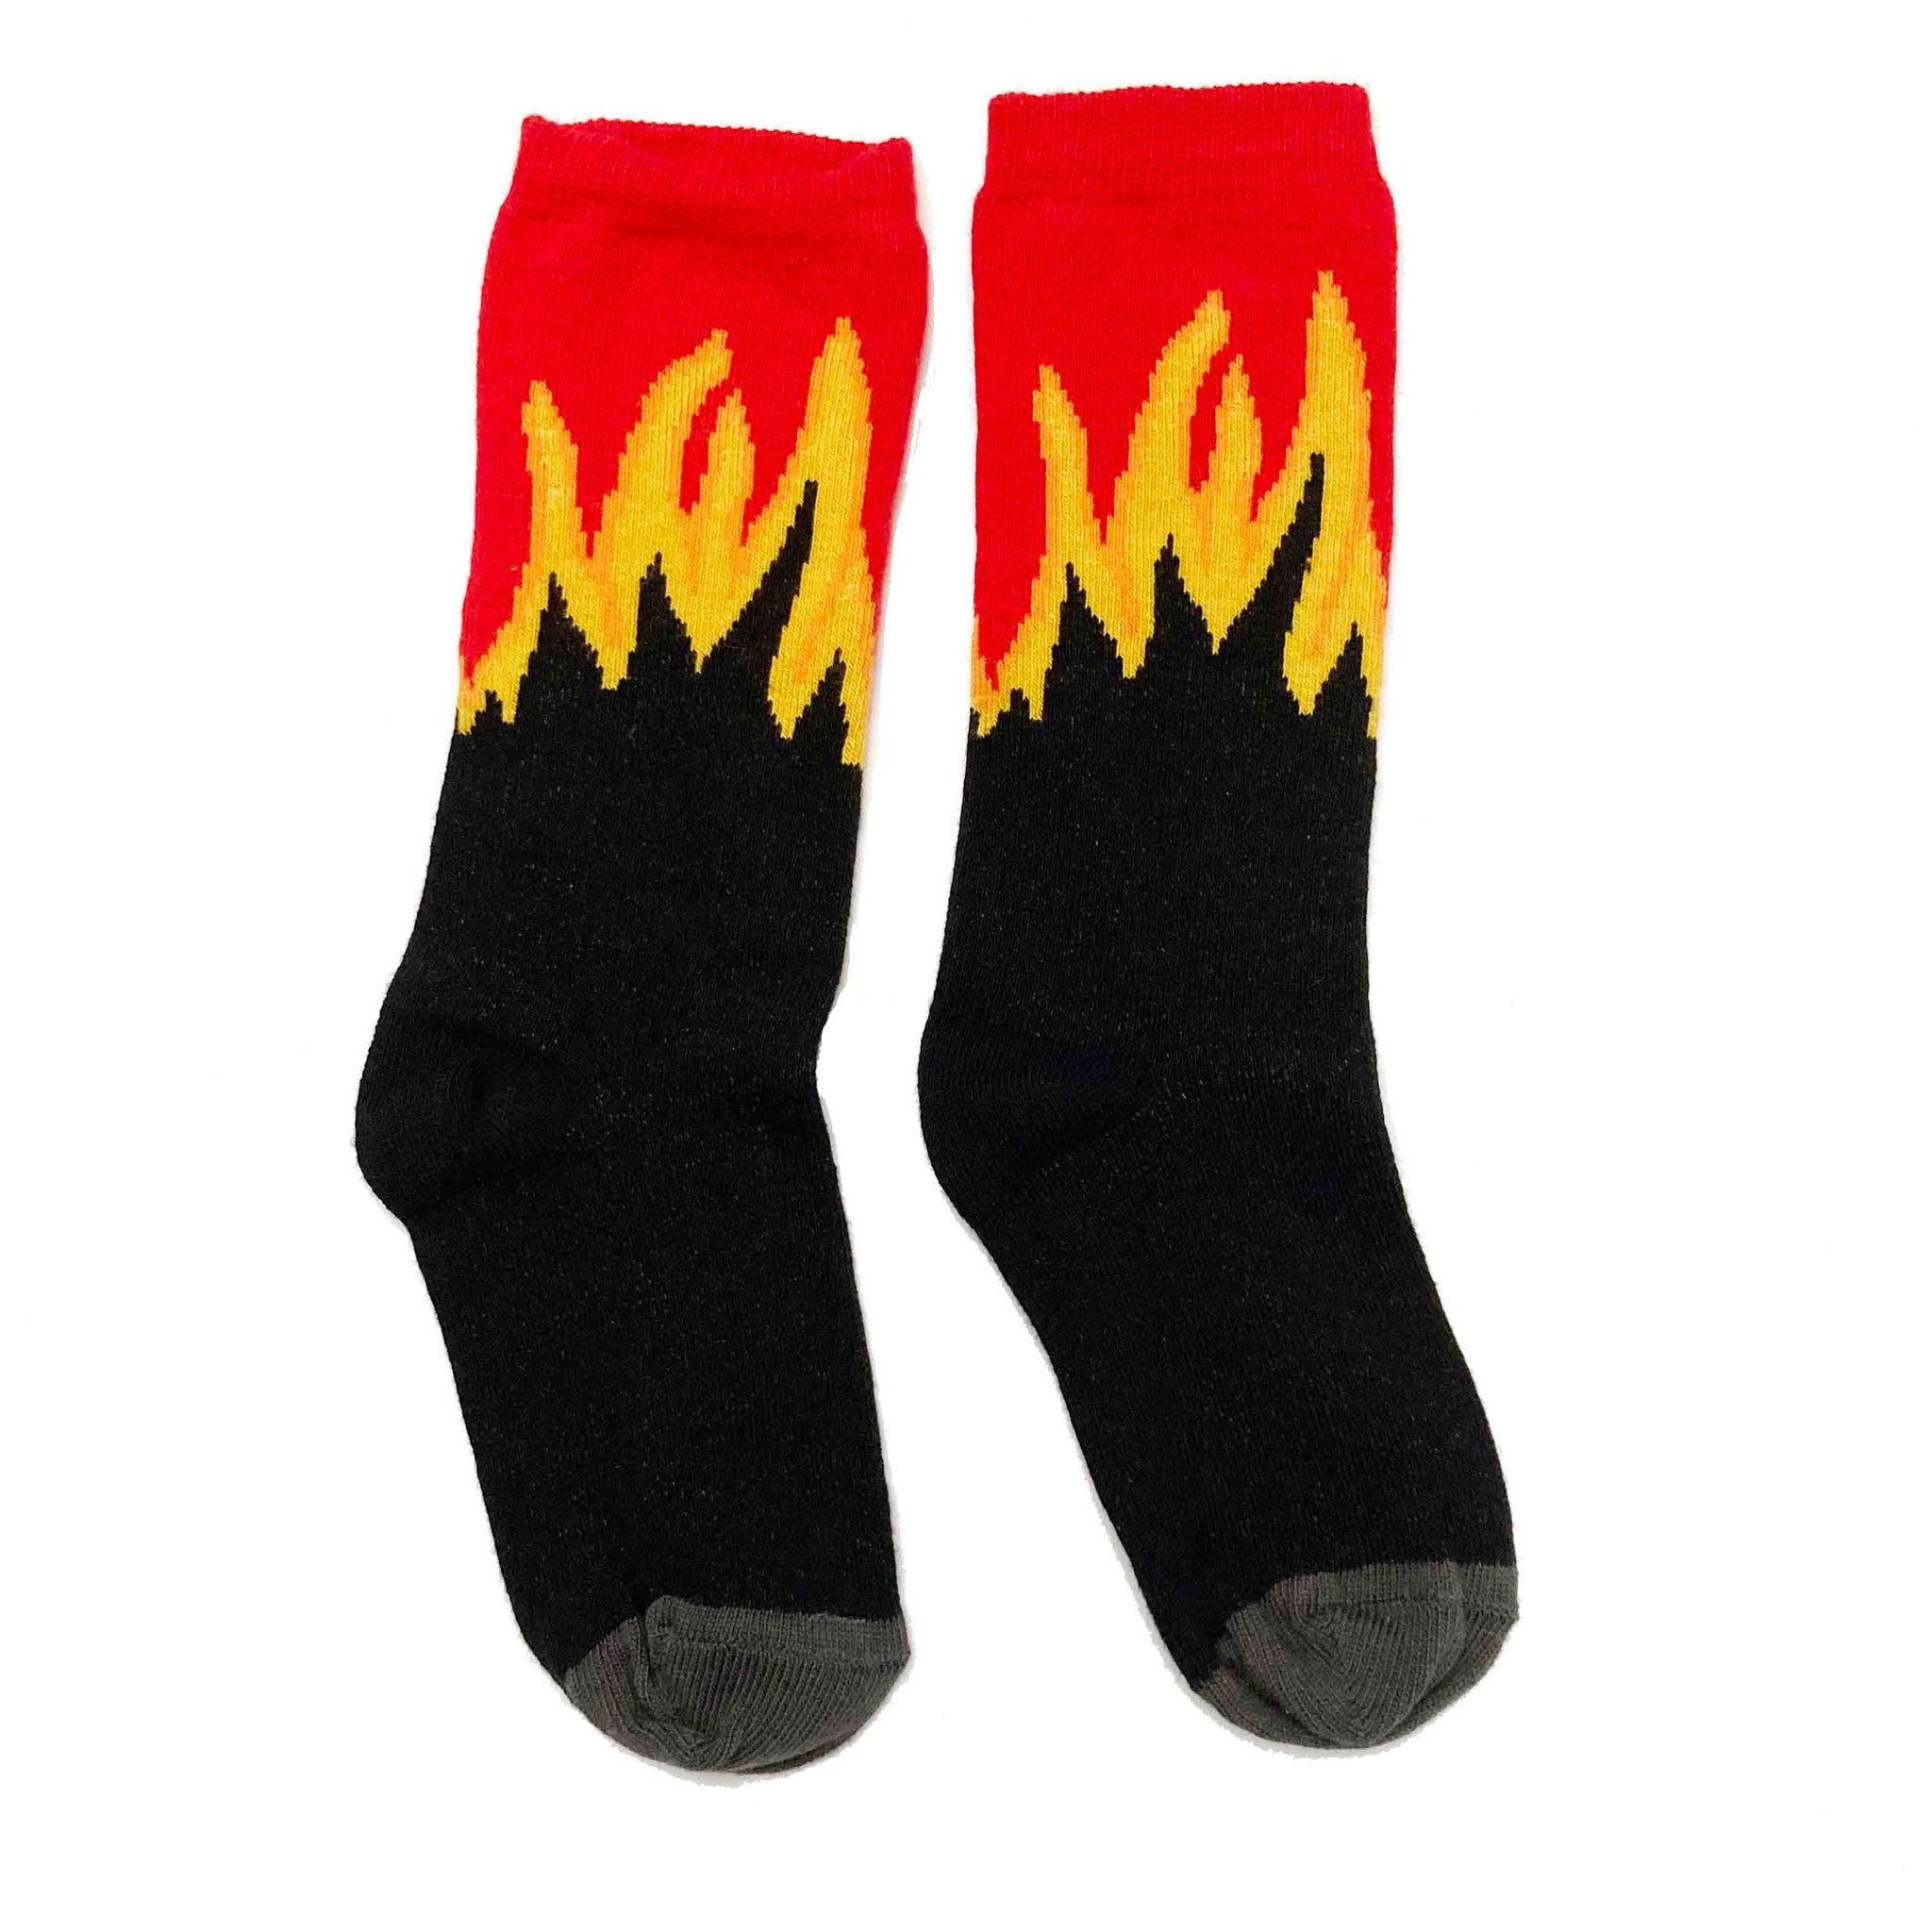 BLACK AND RED FLAME SOCKS 3-4 YEARS